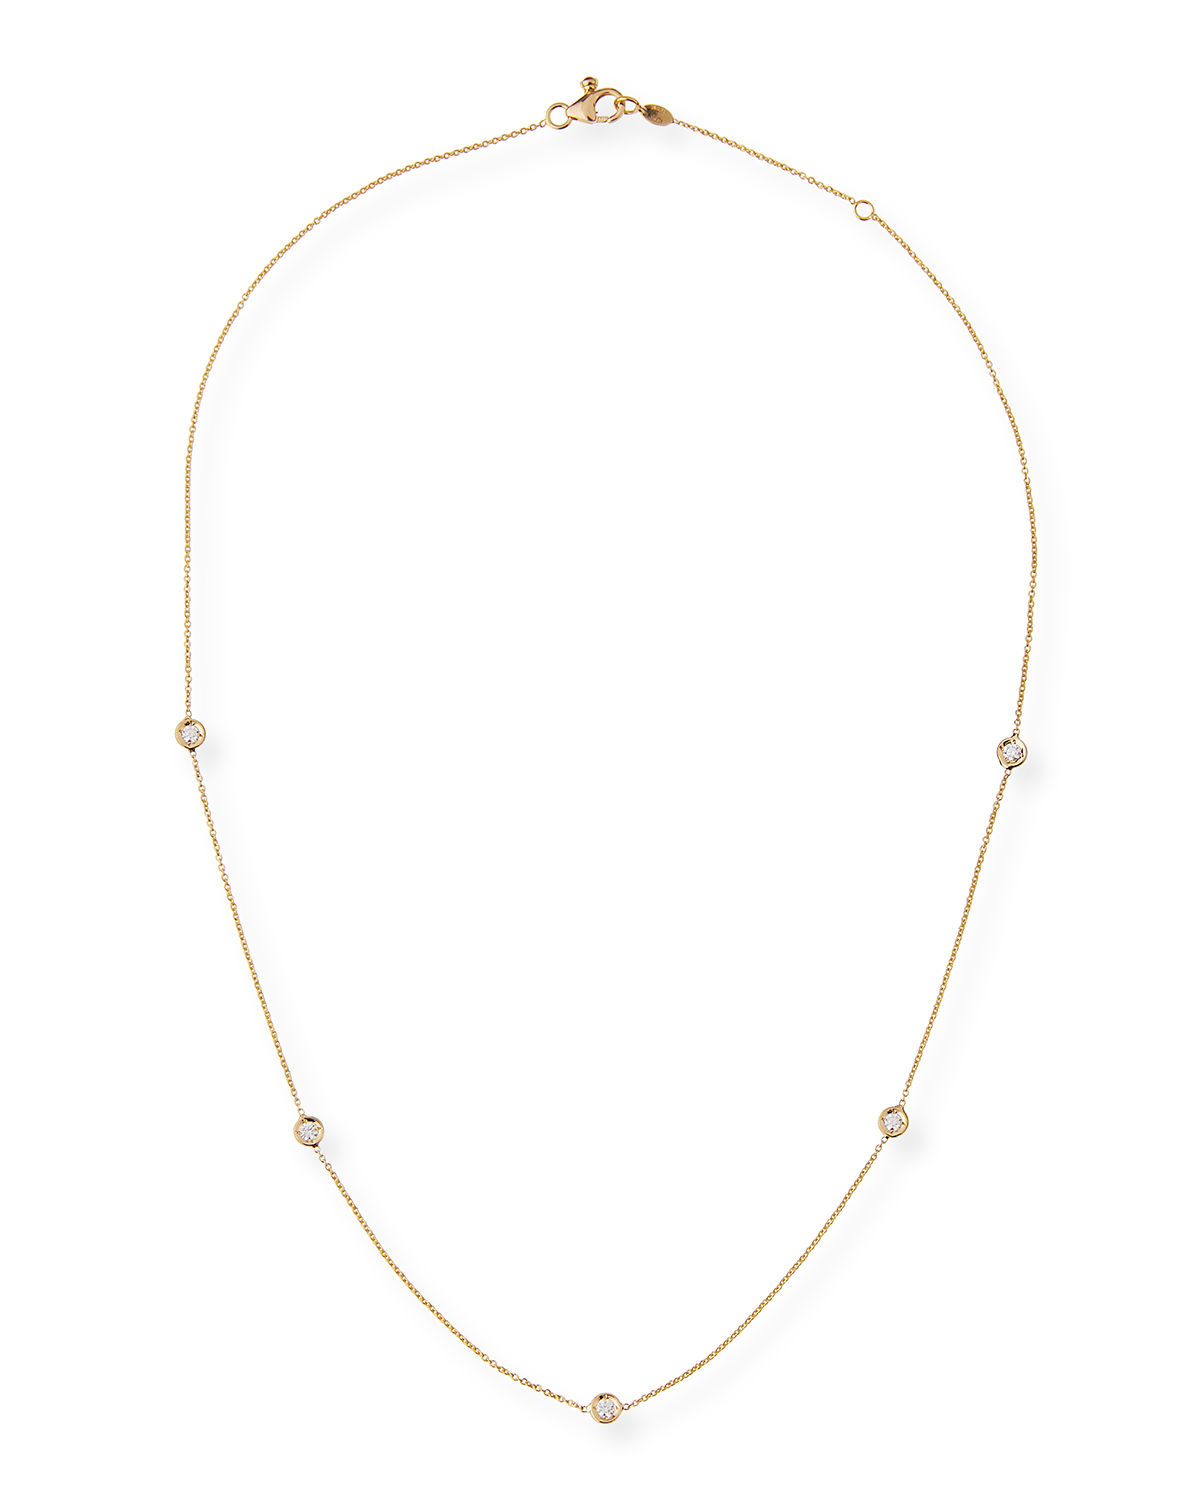 309a2a580 Roberto Coin 18k Gold Diamond Station Necklace | Neiman Marcus